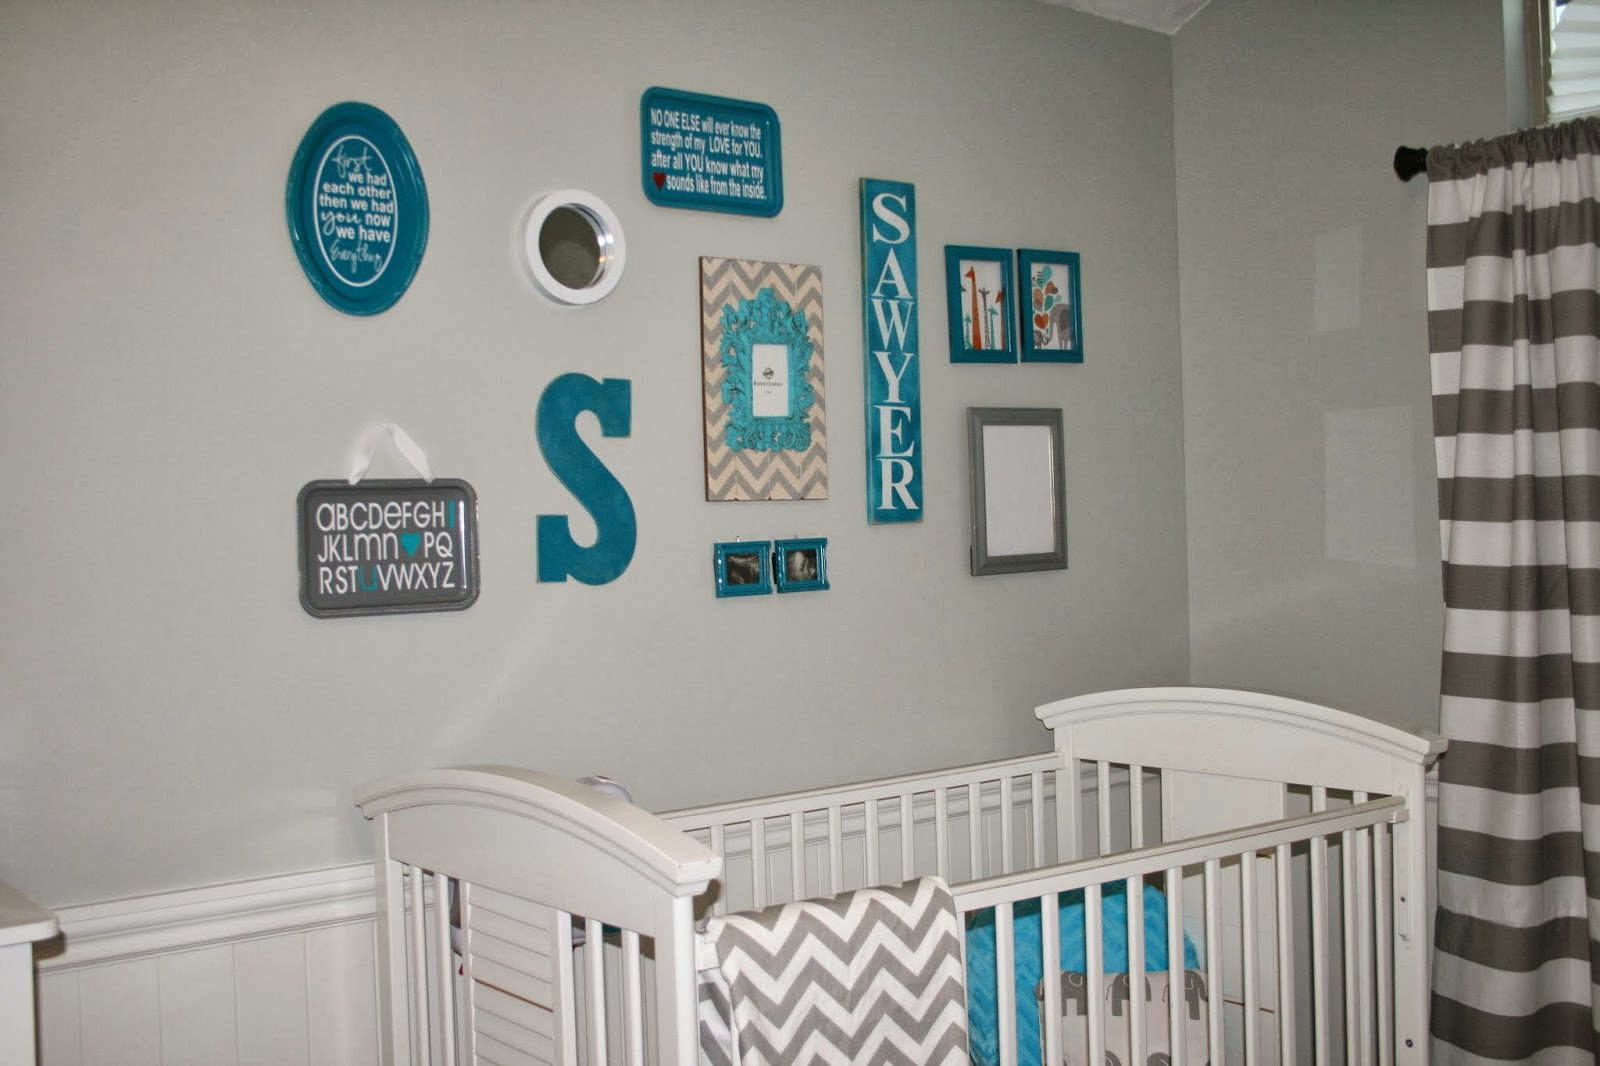 Creative juices baby room decor and collage wall for Room decor wall art